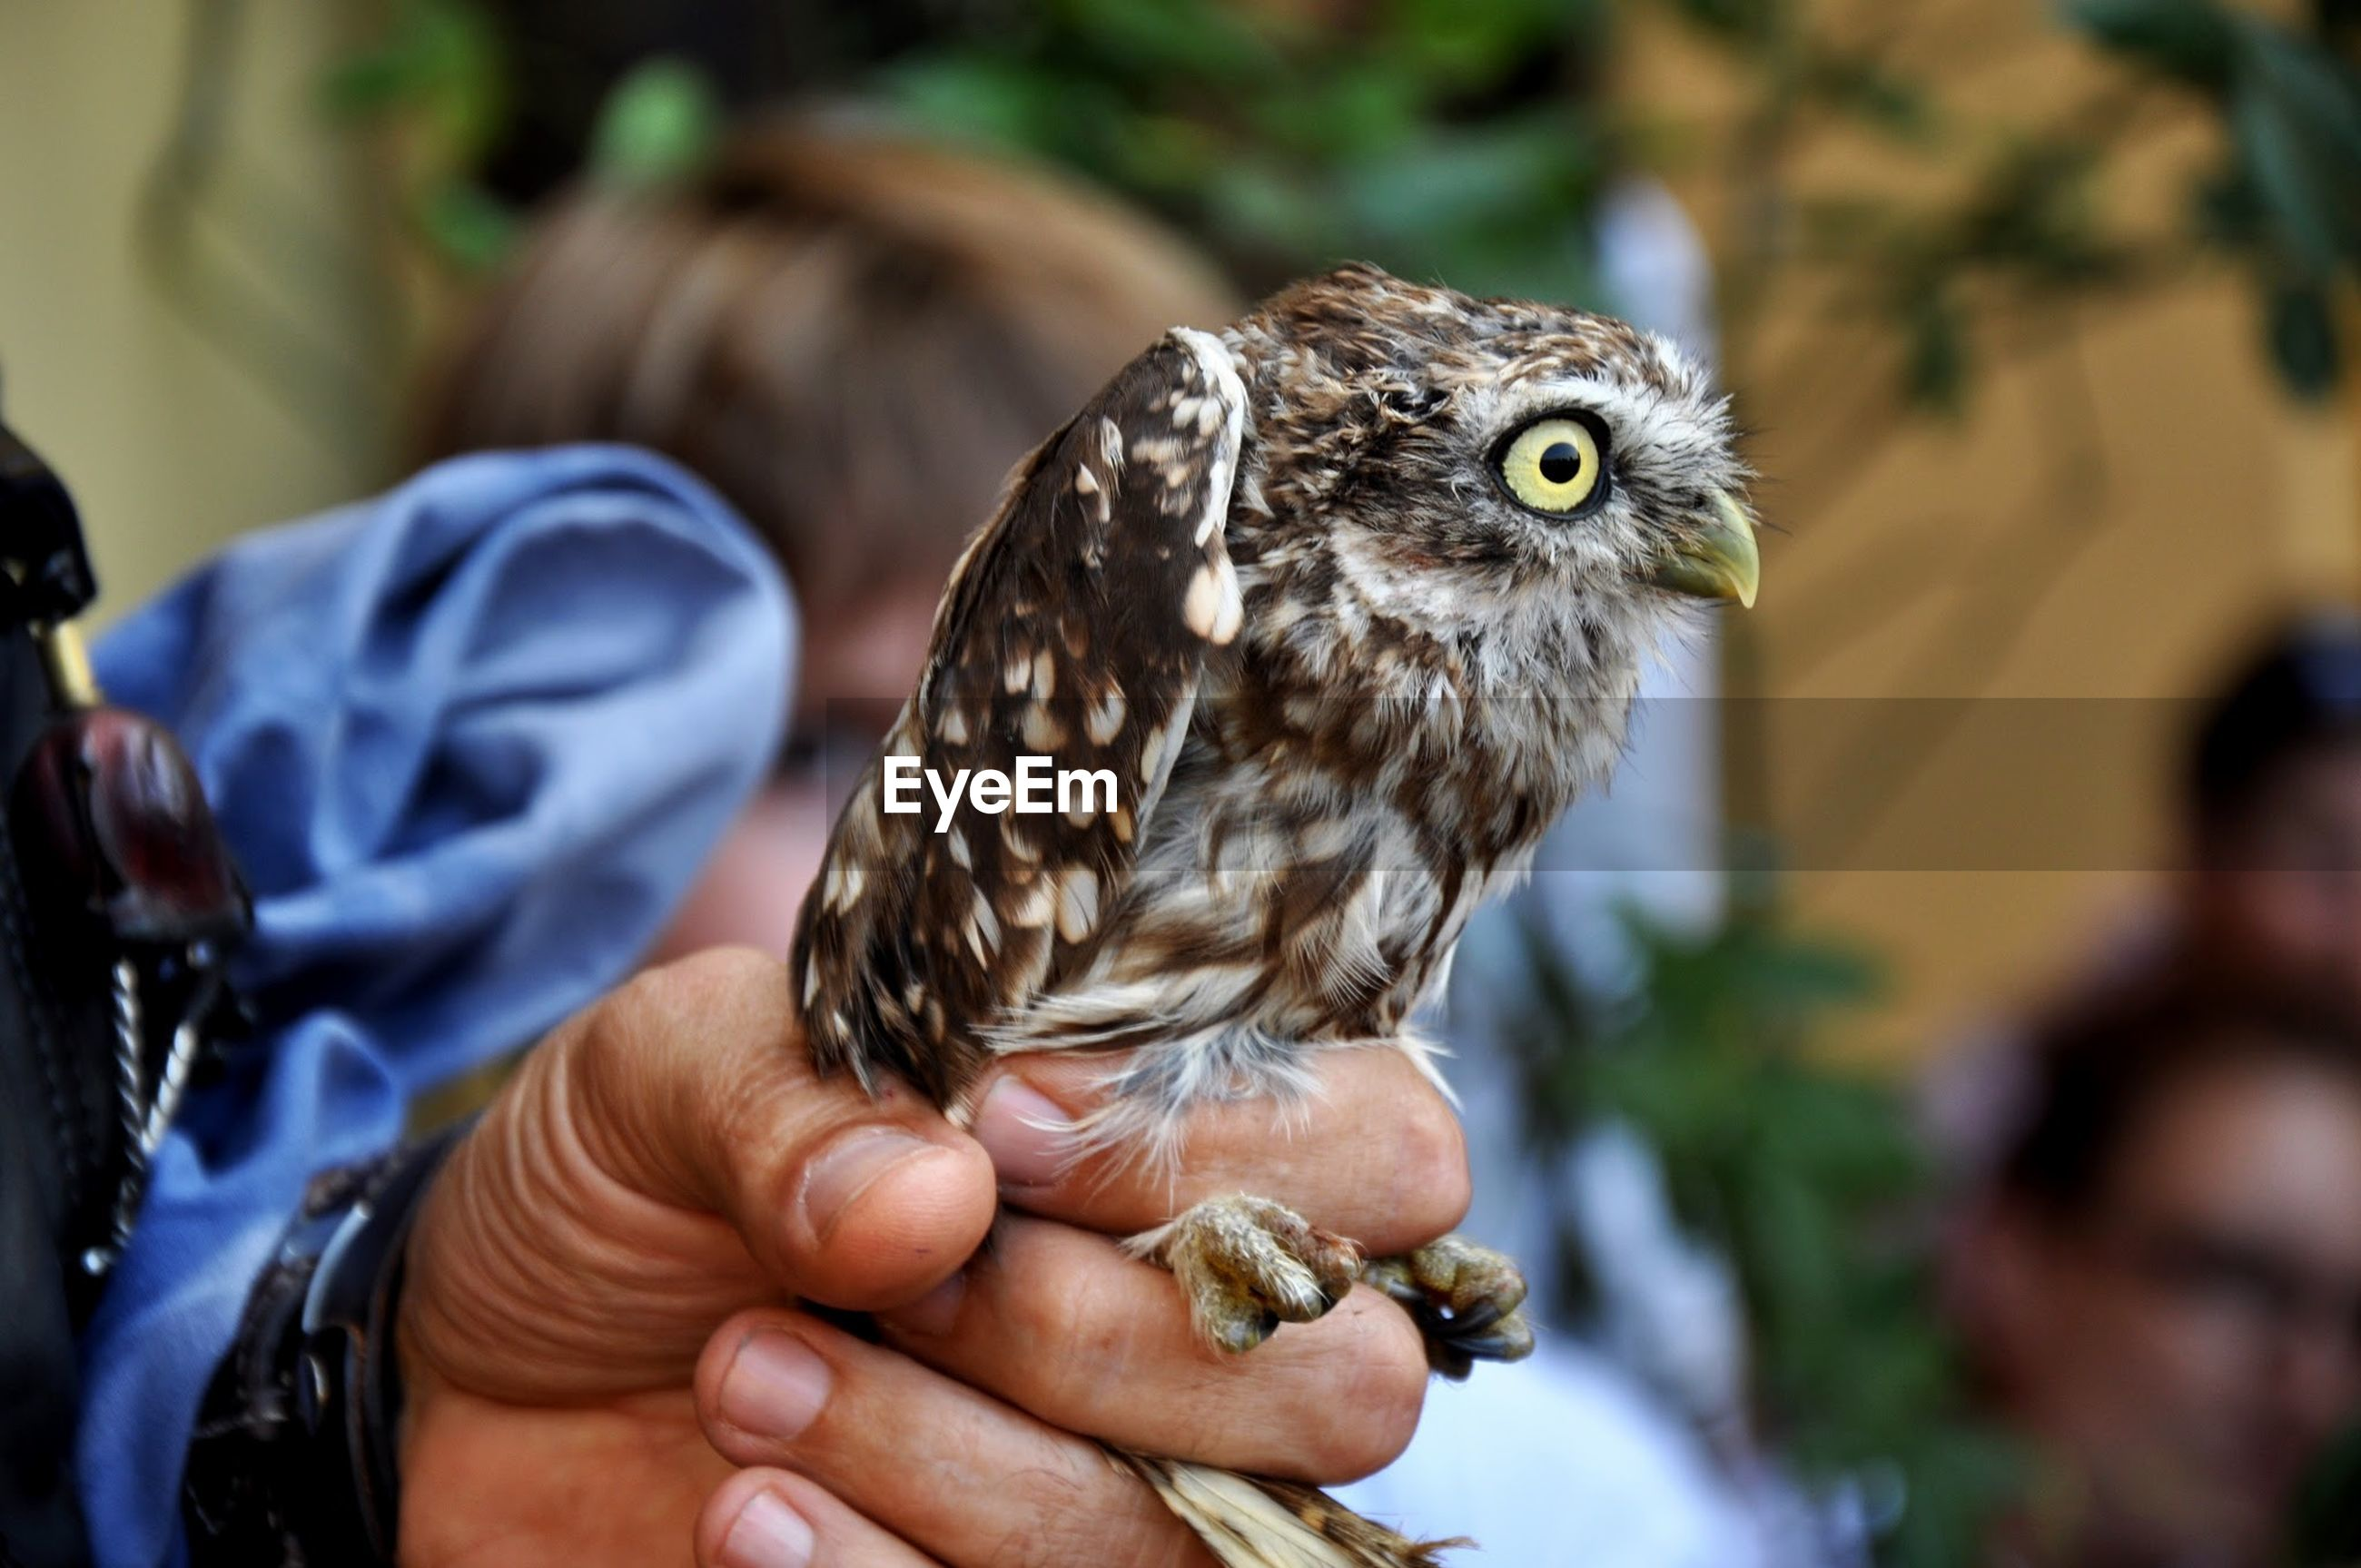 Cropped image of hand holding owl